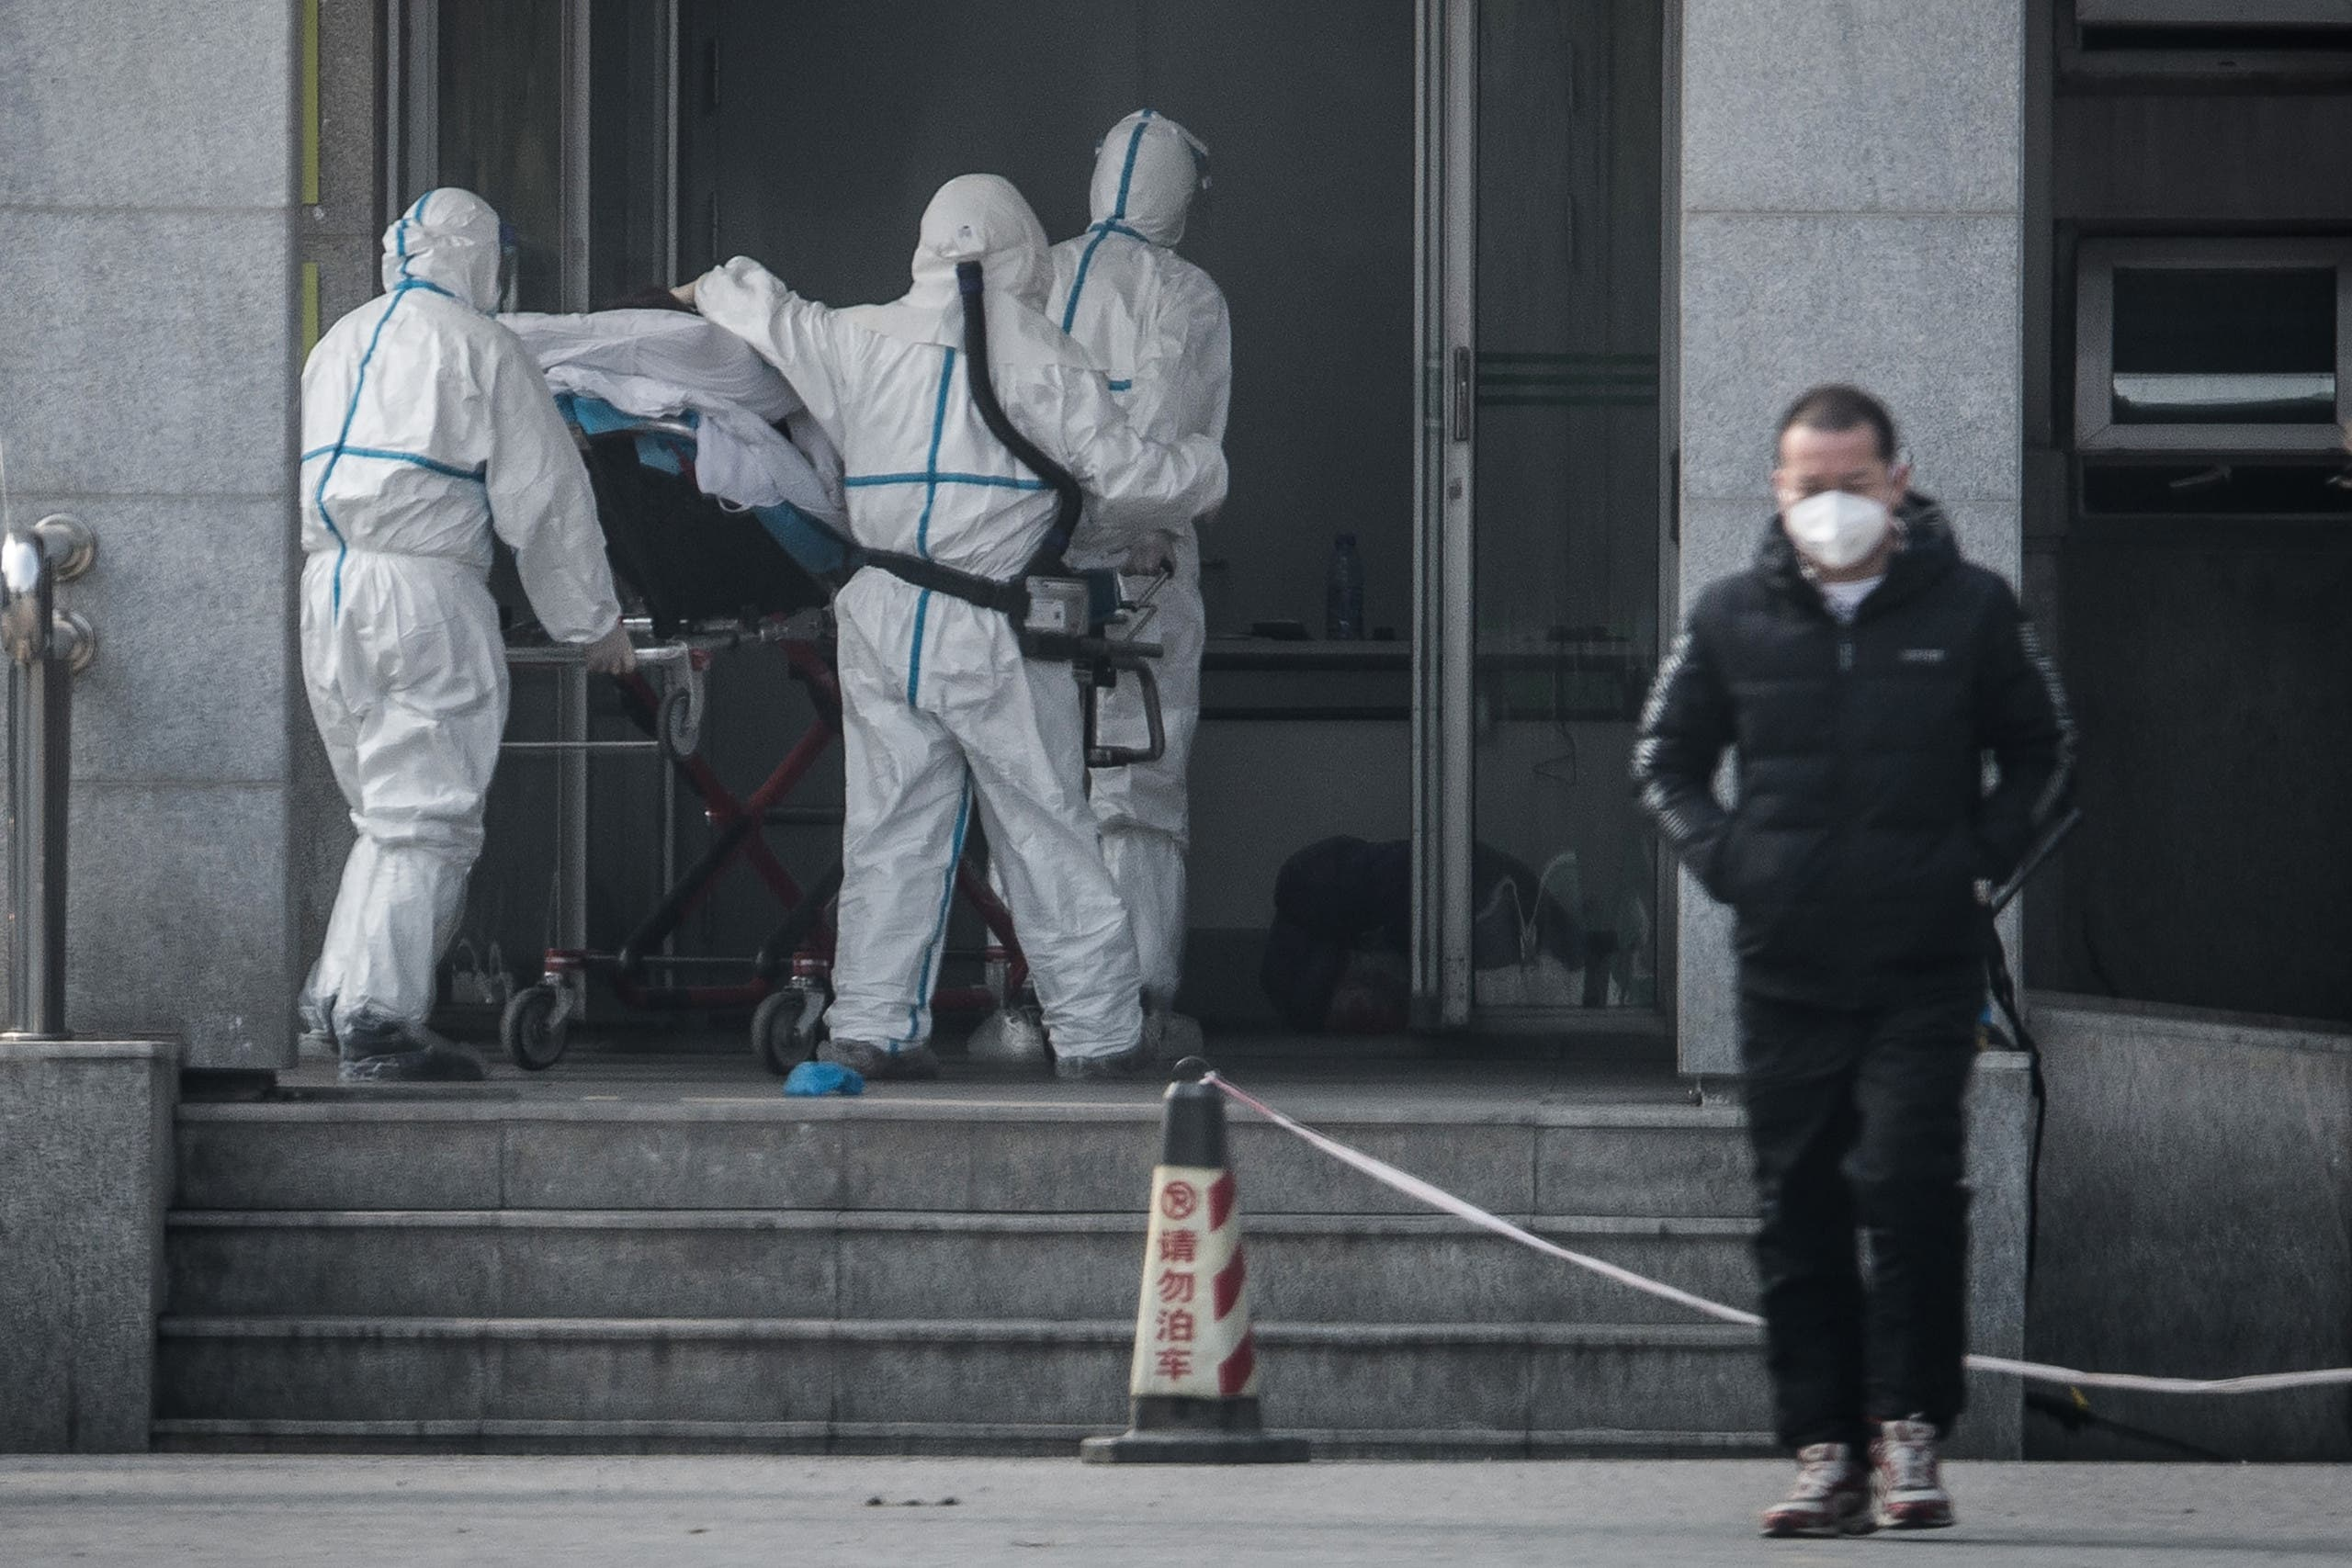 Medical staff members carry a patient into the Jinyintan hospital, where patients infected by a mysterious SARS-like virus are being treated, in Wuhan. (File photo: AFP)